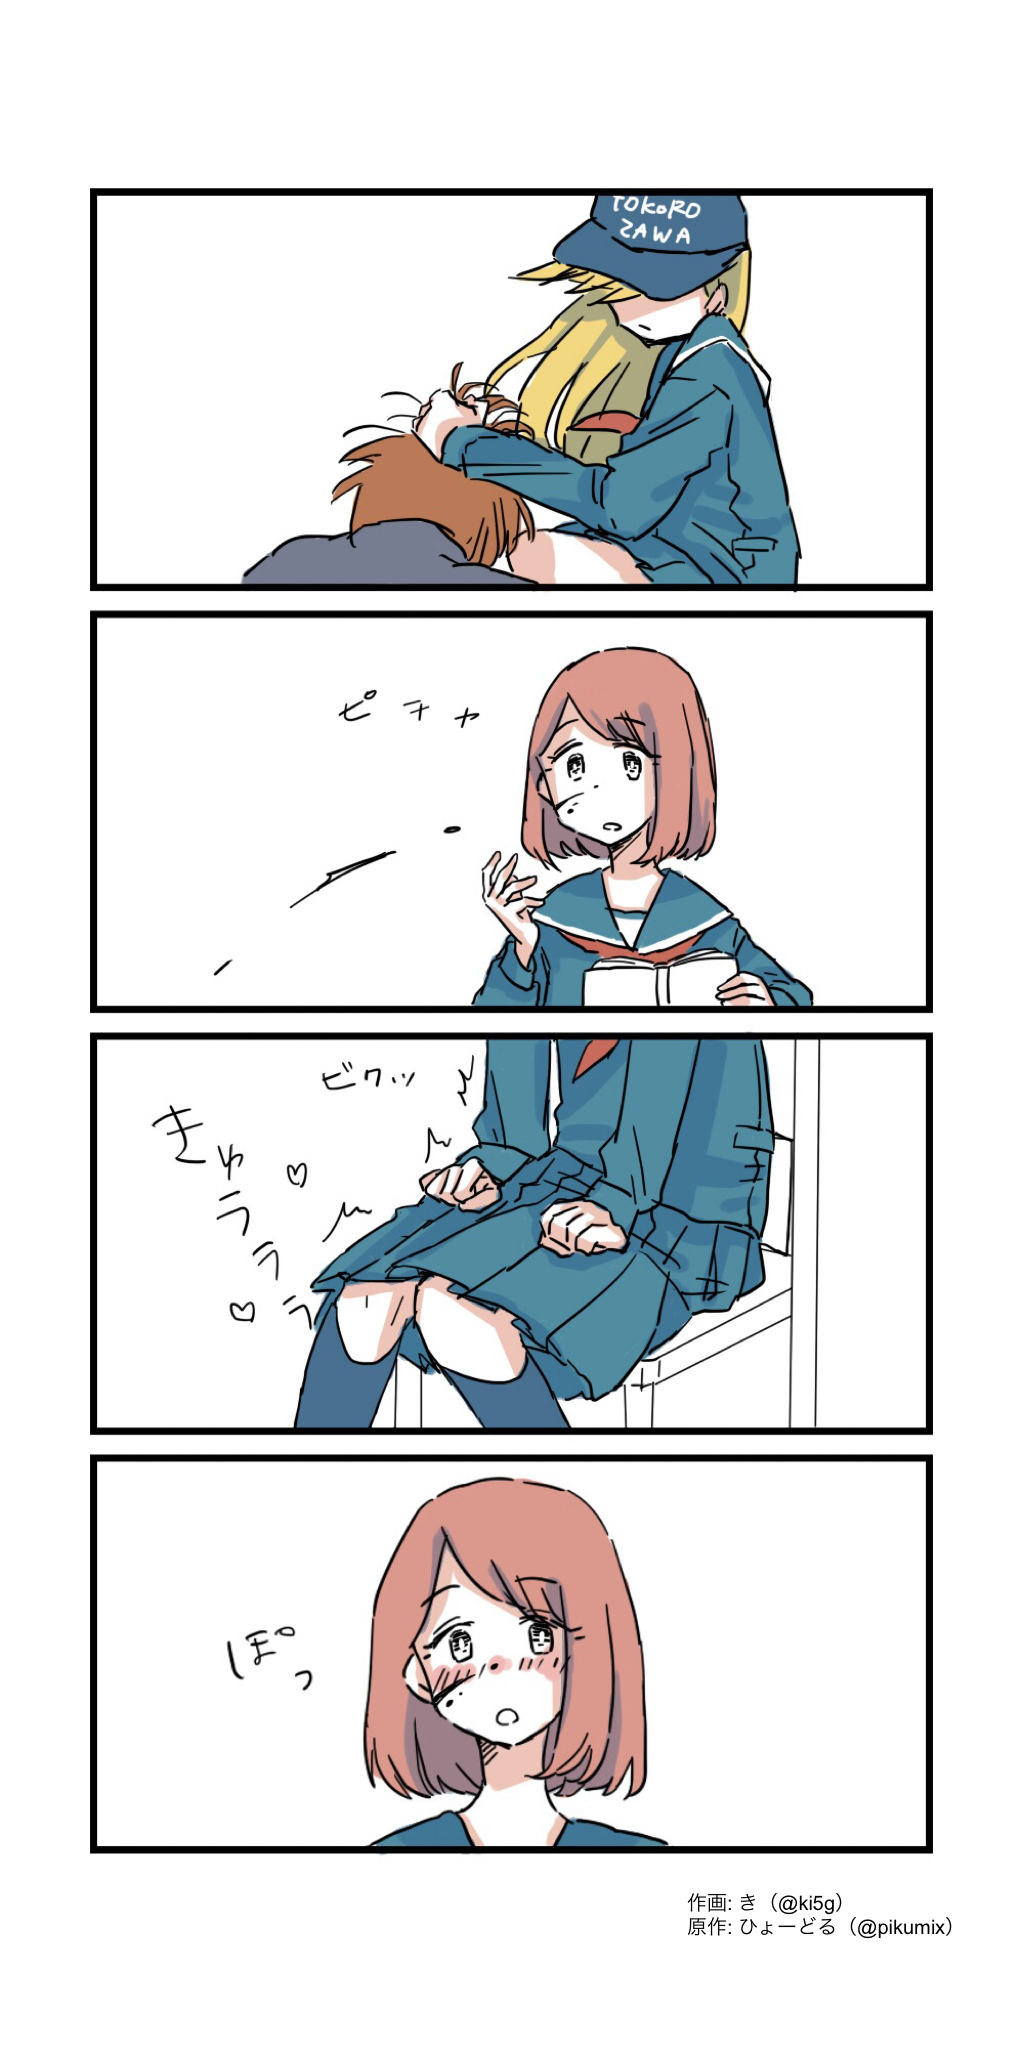 20190609114815150.png